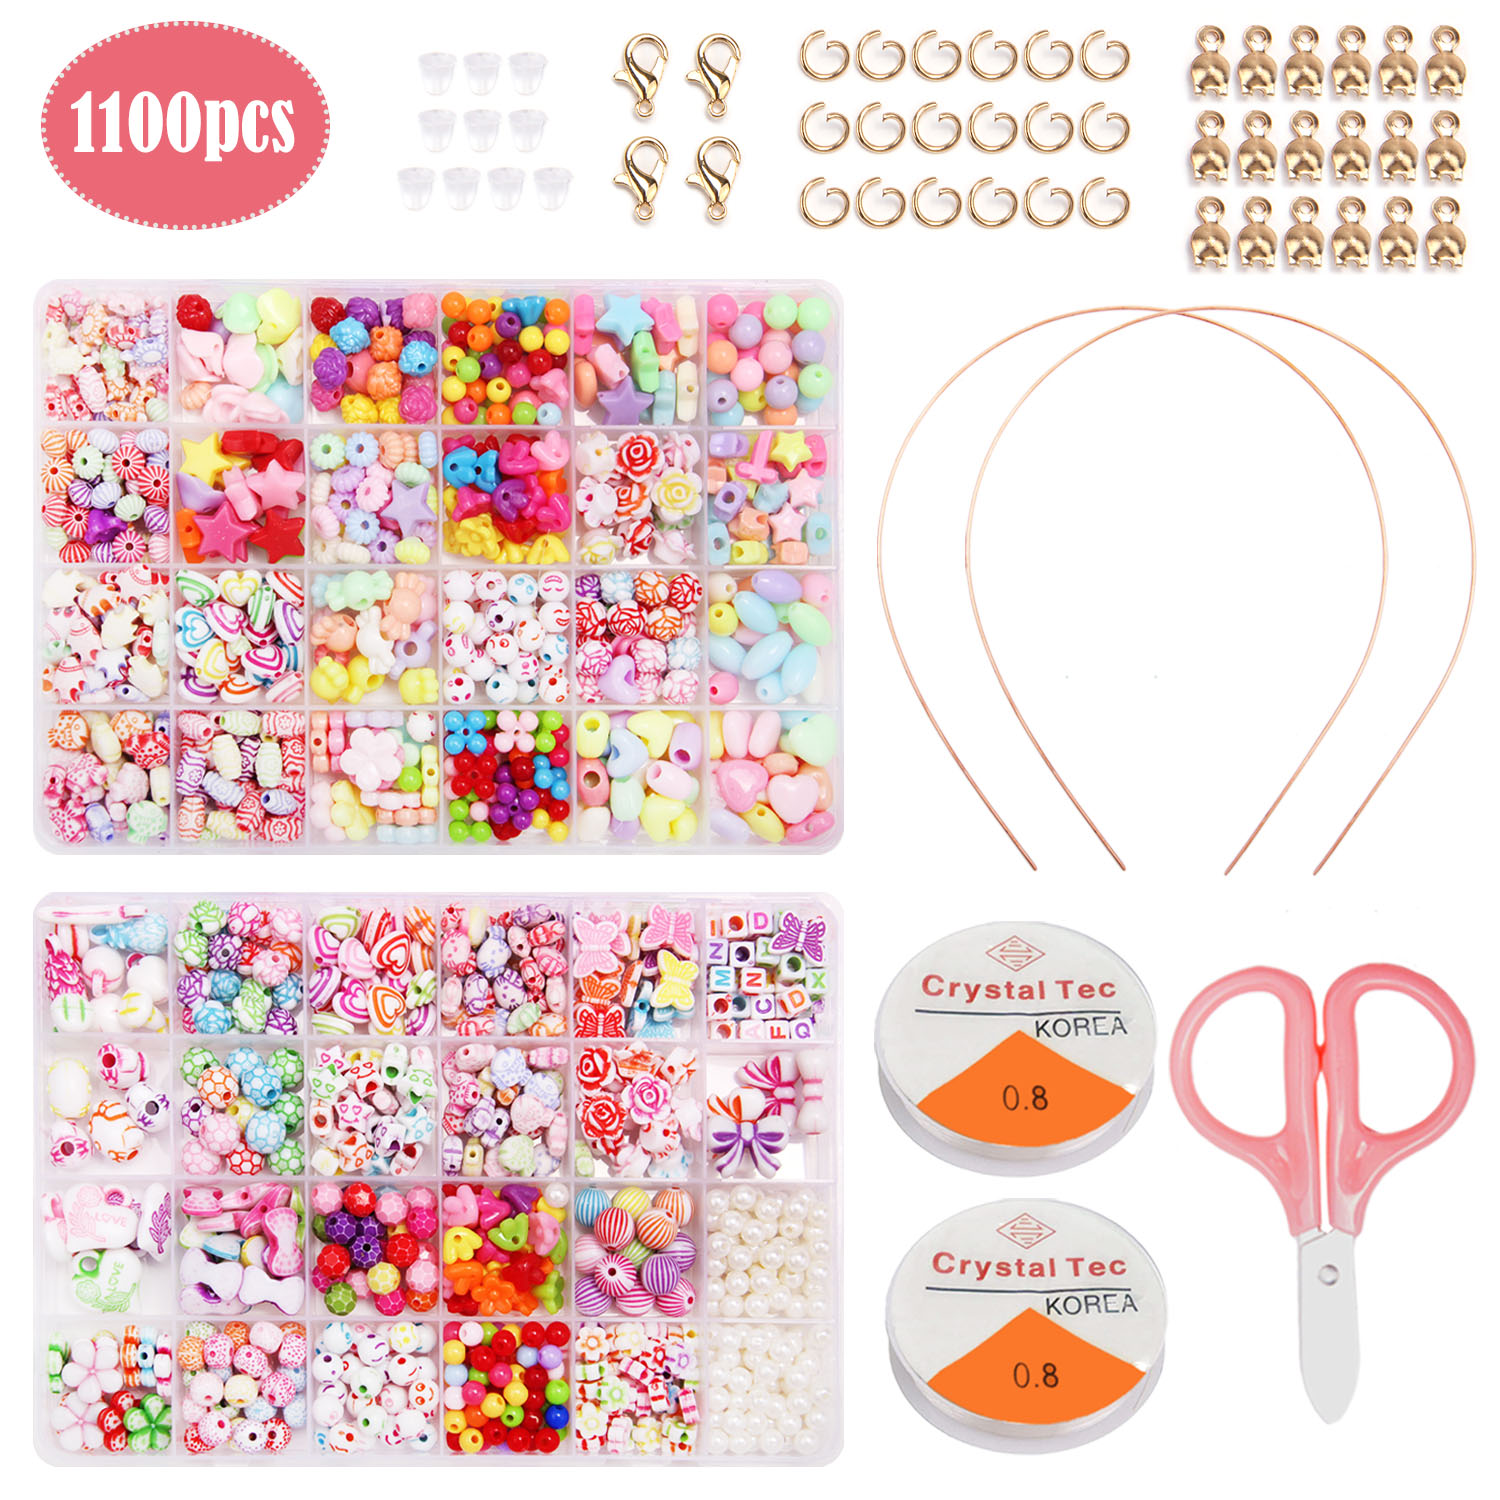 1100pcs Acrylic Crafts Bracelets Beads With Scissors String Hair Hoop For Kids Jewelry Bracelet Necklace Making Supplies